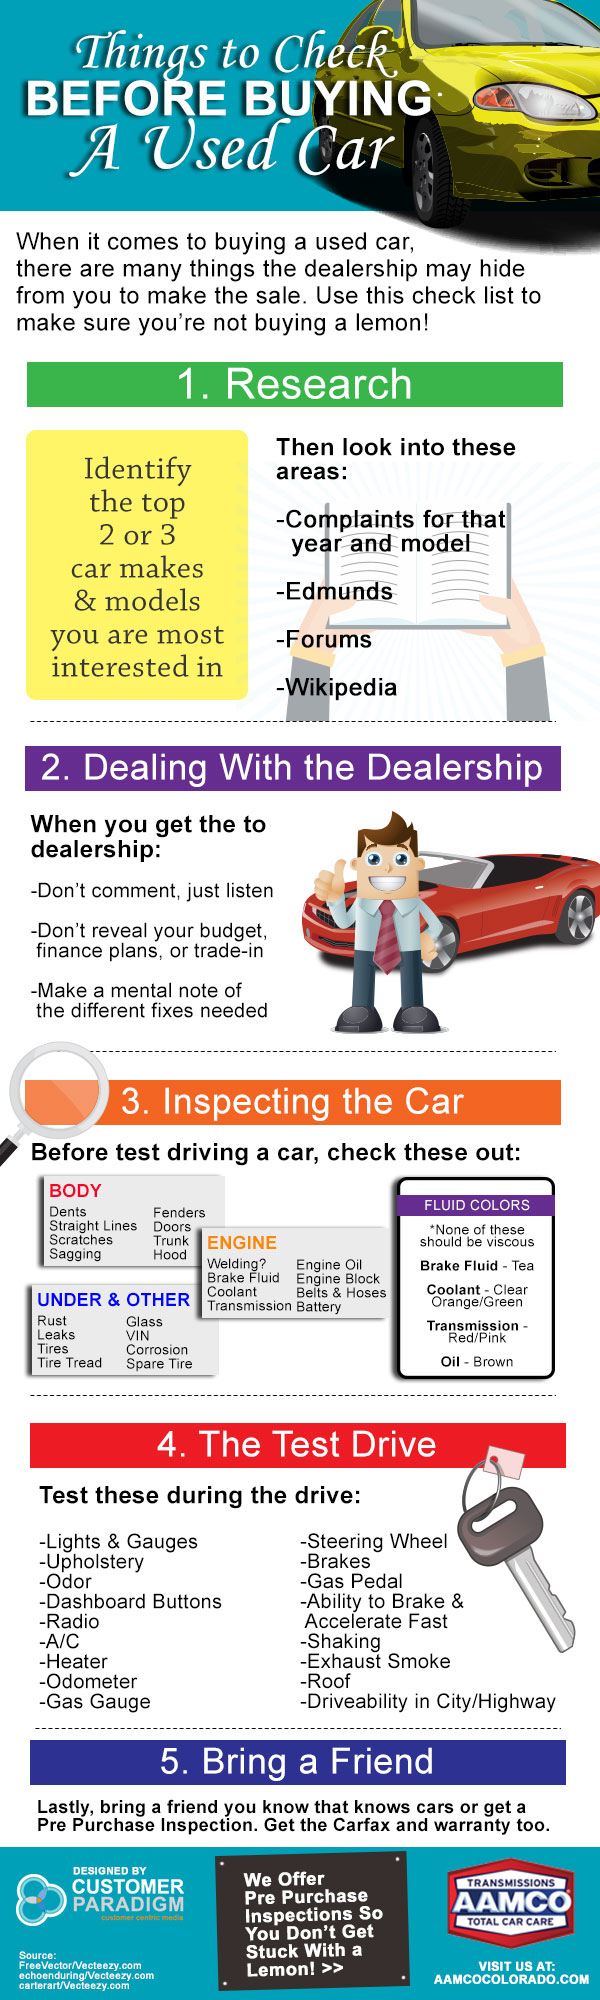 Things to Check Before Buying a Used Car Infographic - Transmission Service - AAMCO Colorado